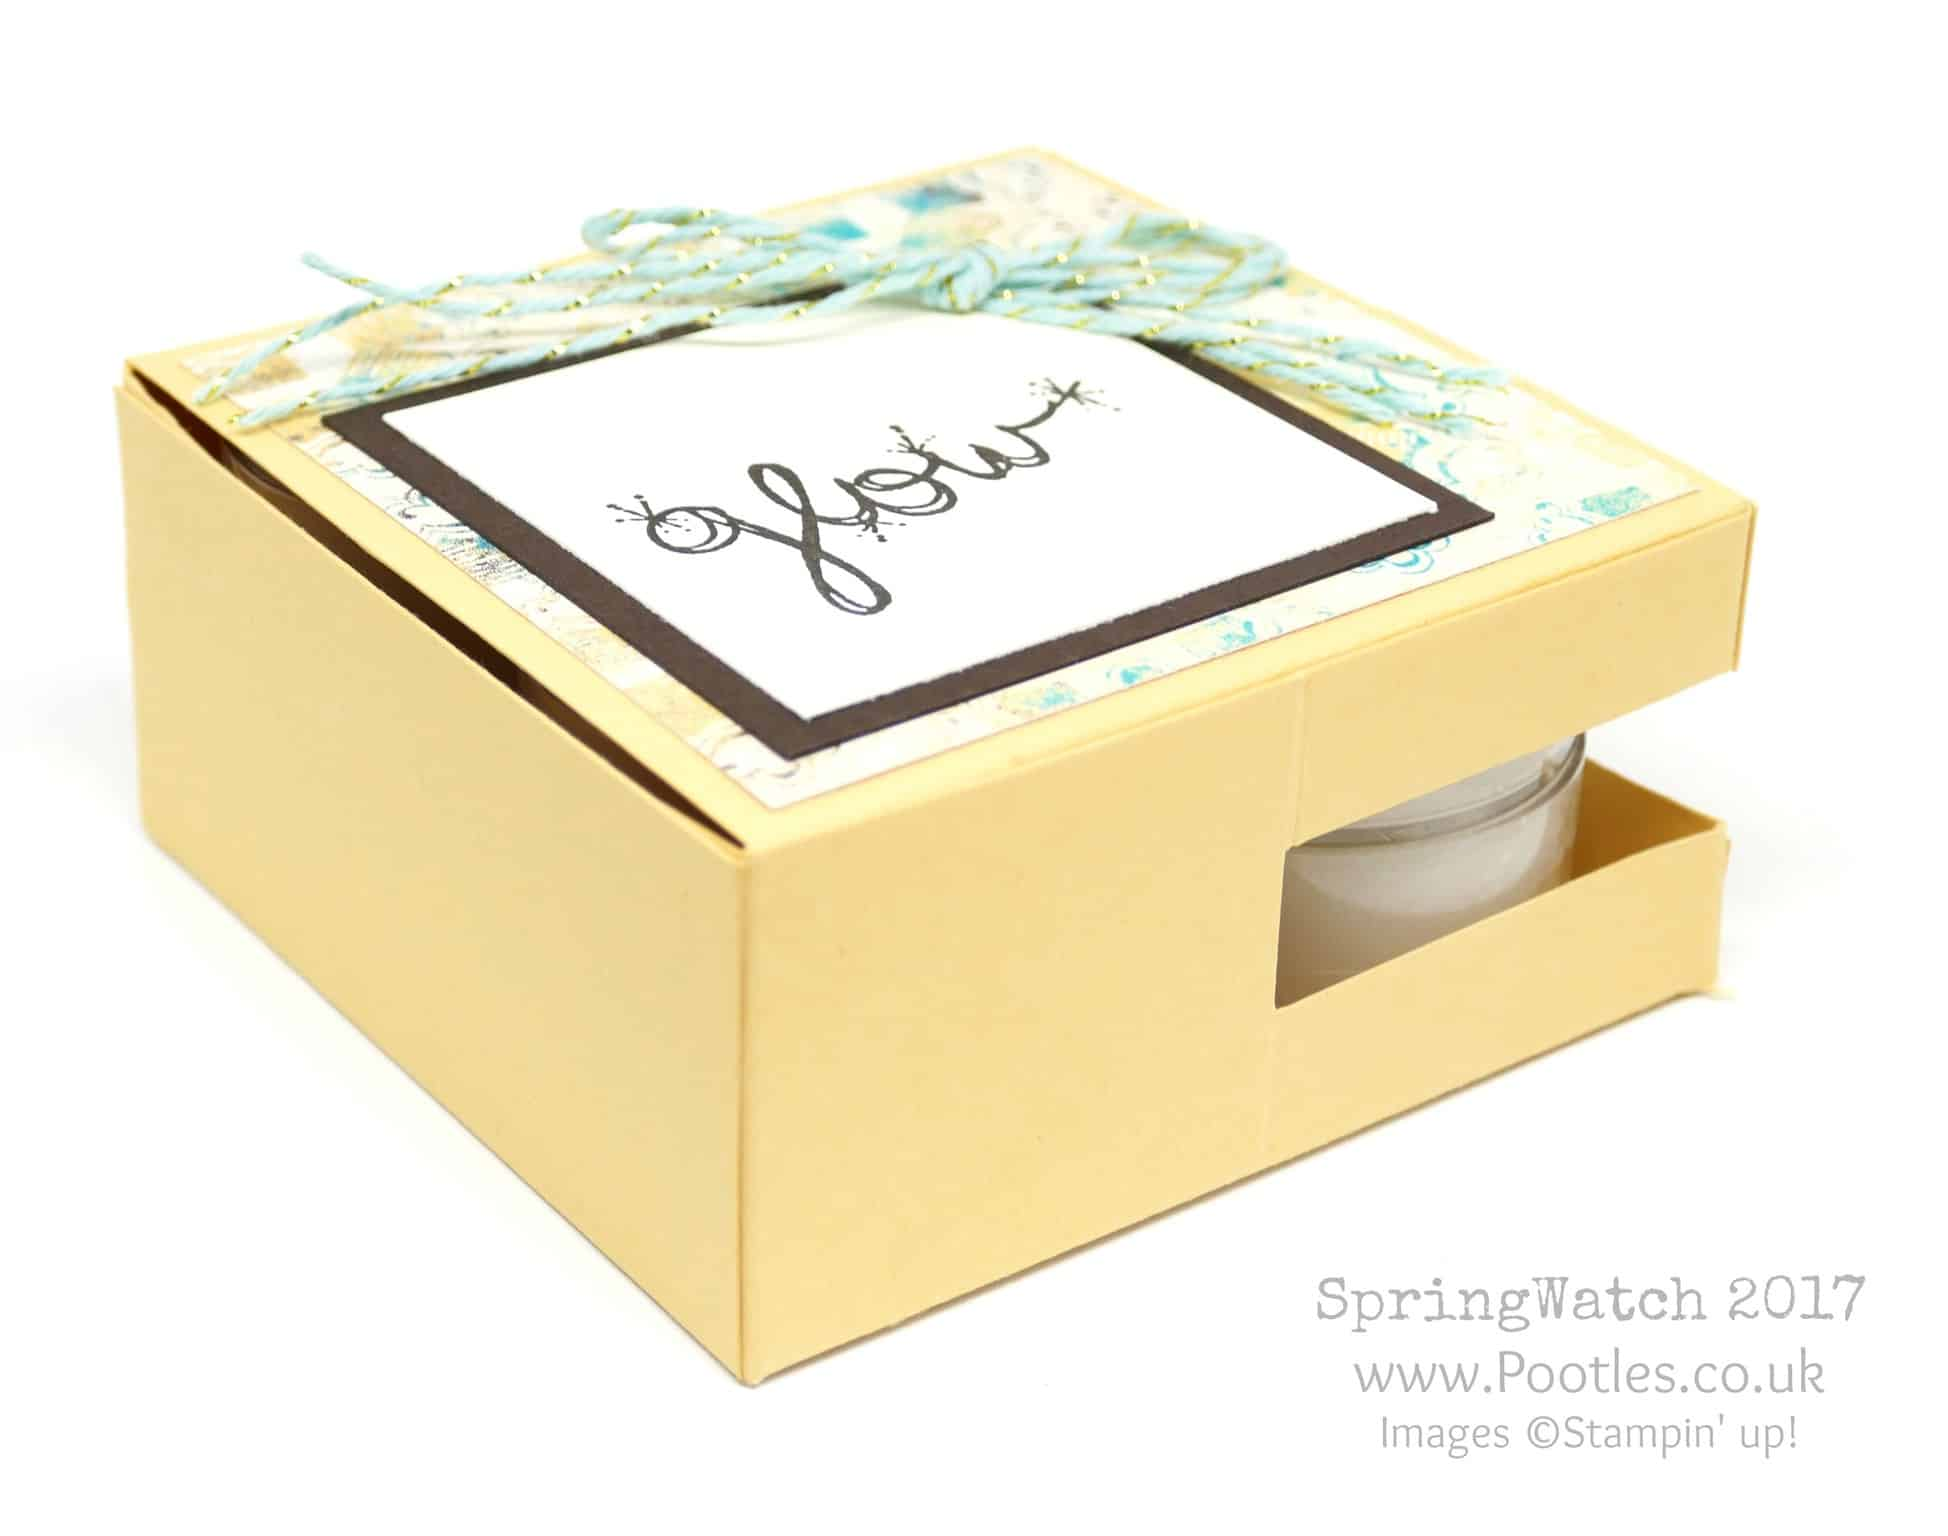 Pootles SpringWatch 2017 Scented Candle Peep Hole Box